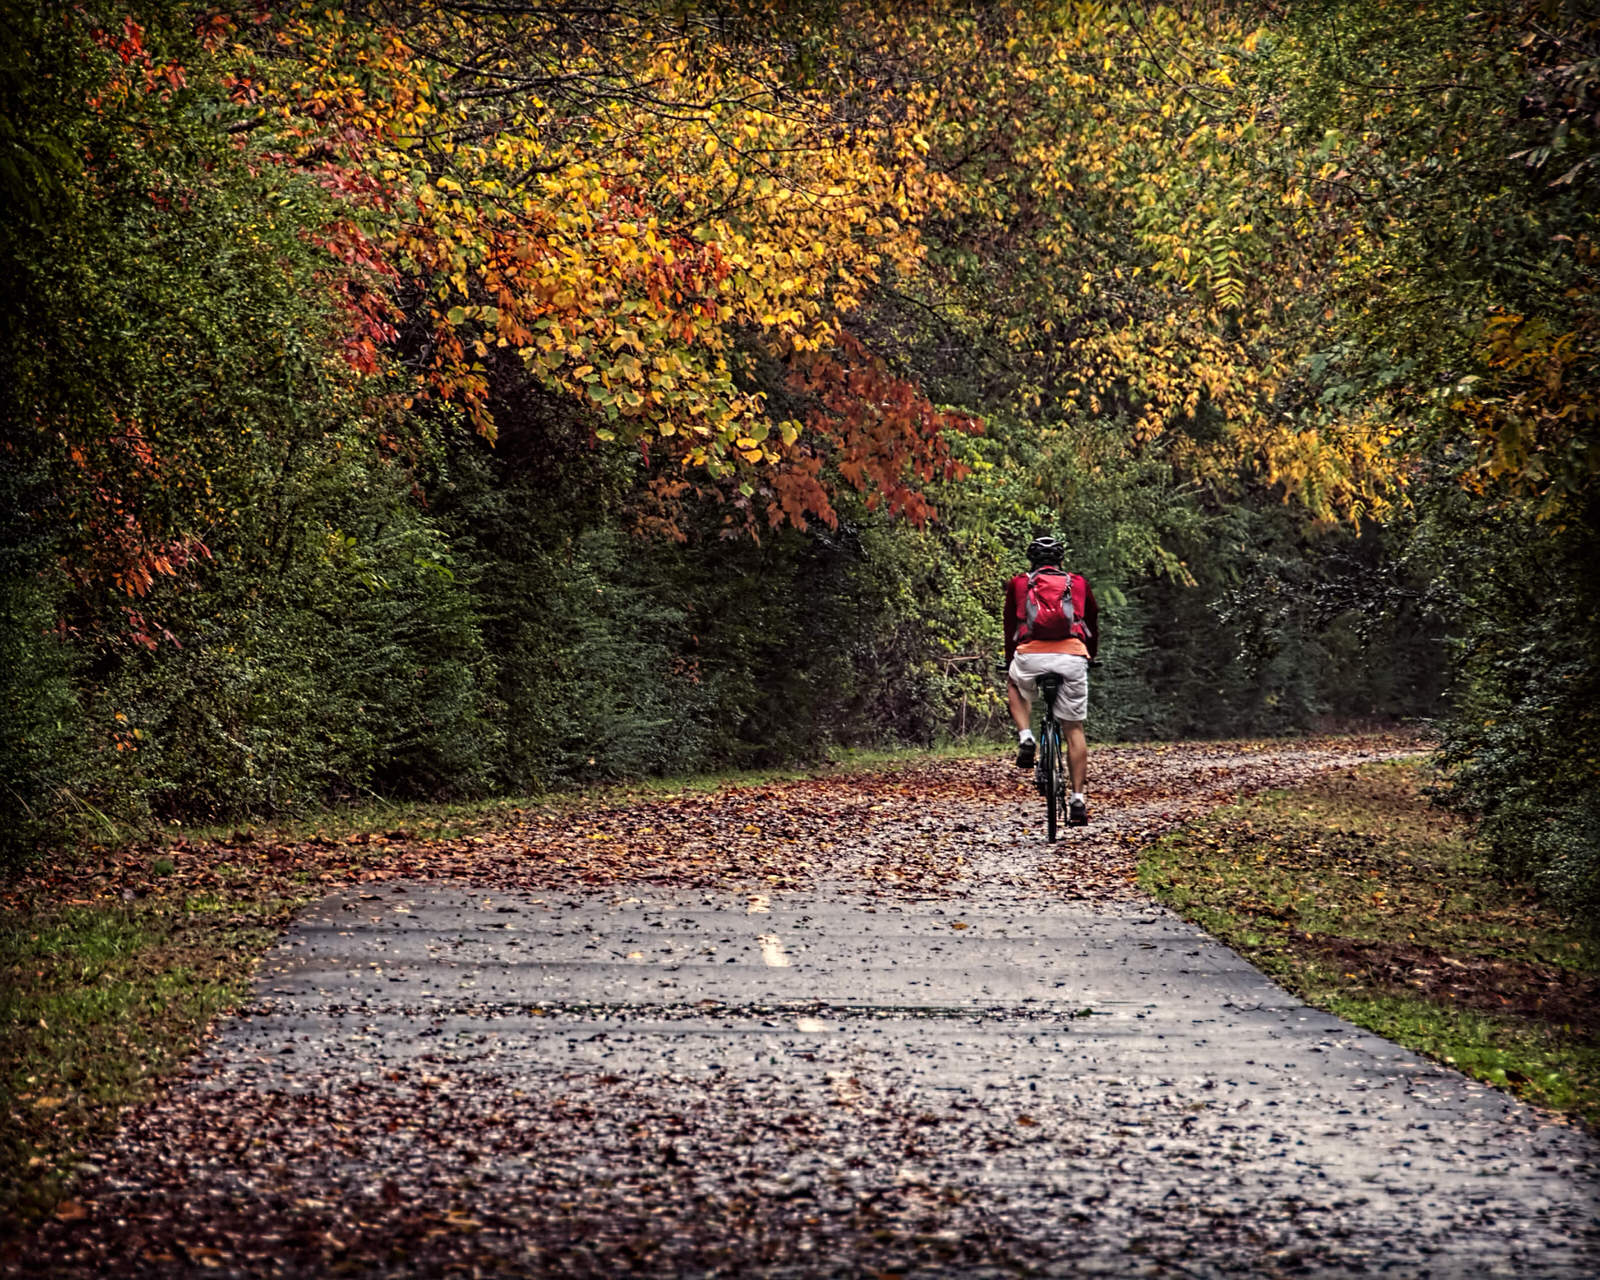 photo: A bicyclist on a beautiful autumn day. Photo by Clara Williams.